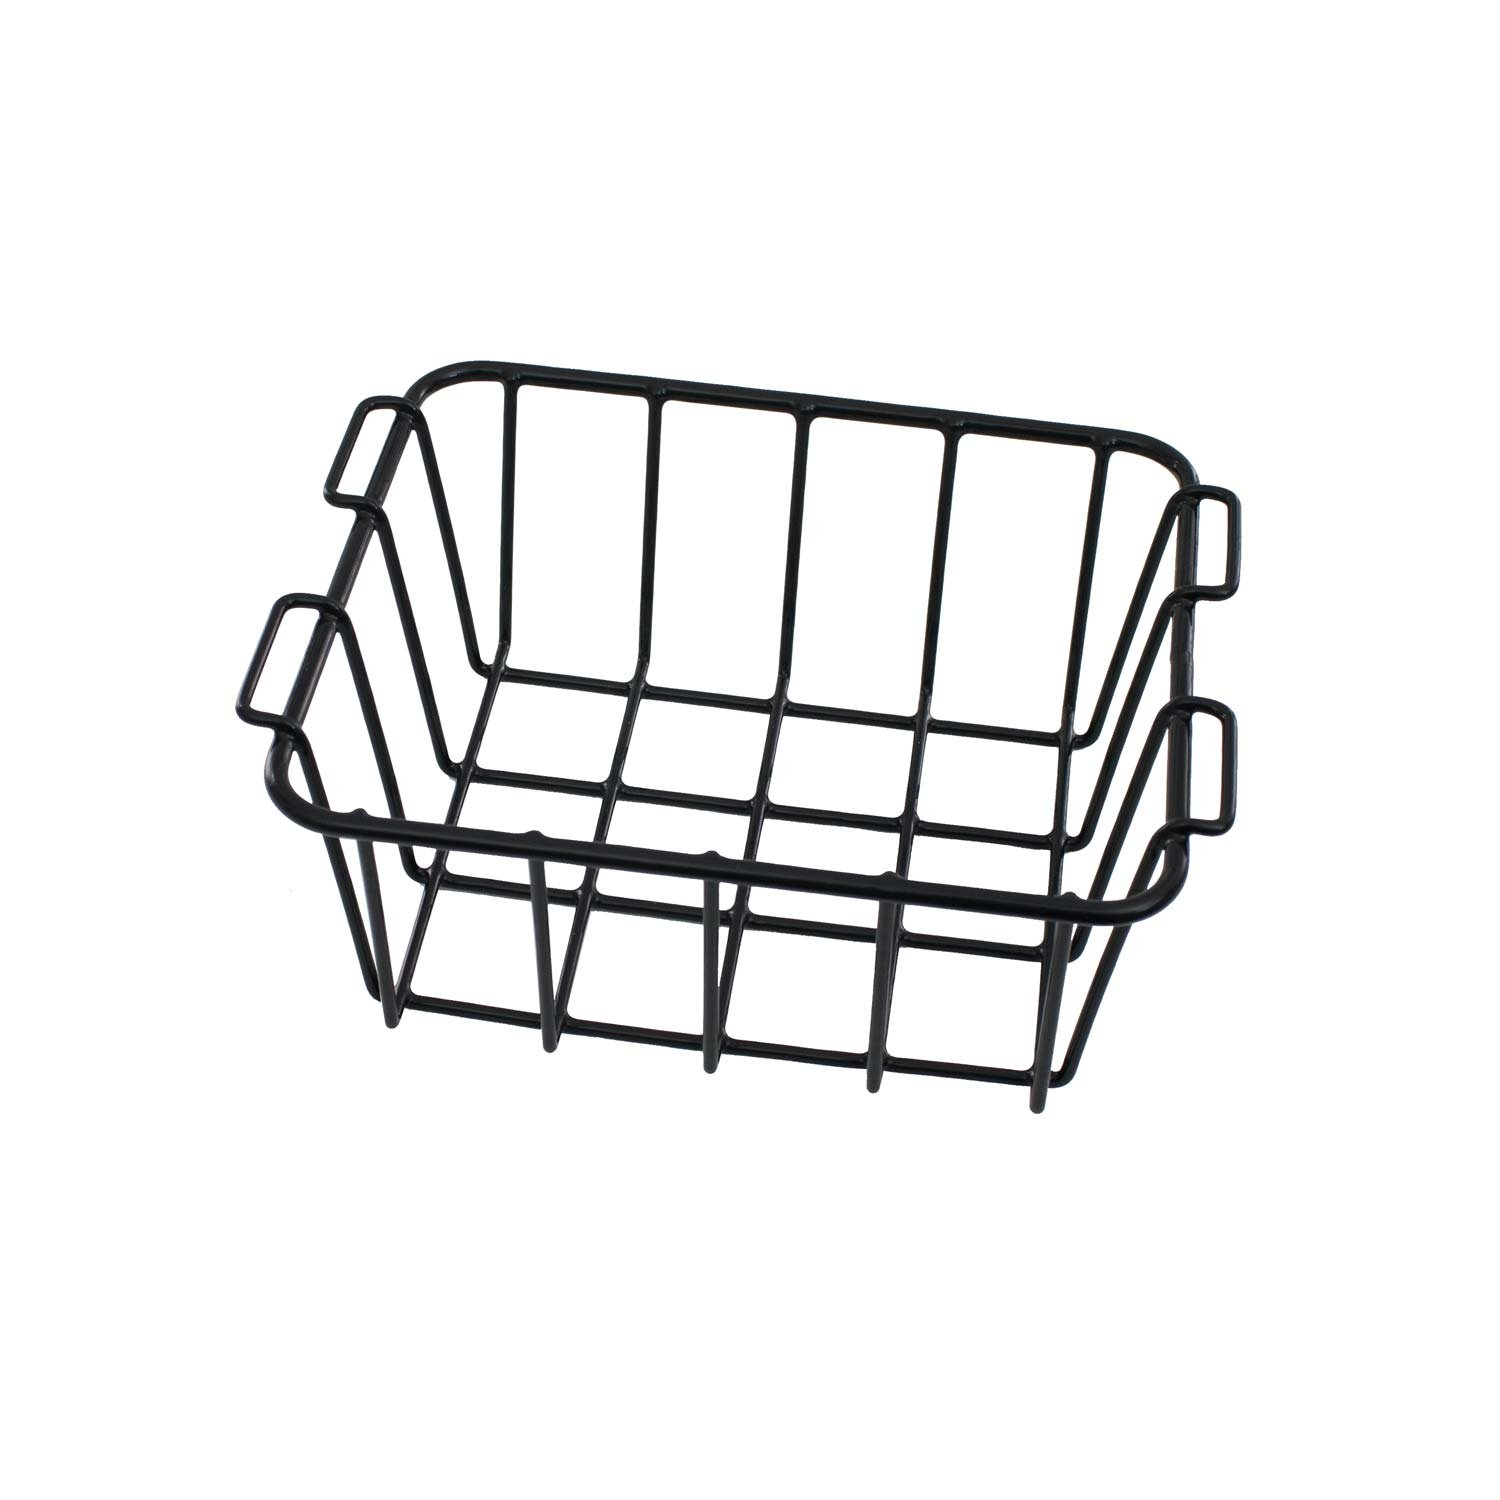 Driftsun Dry Goods Basket Coolers and Ice Chests